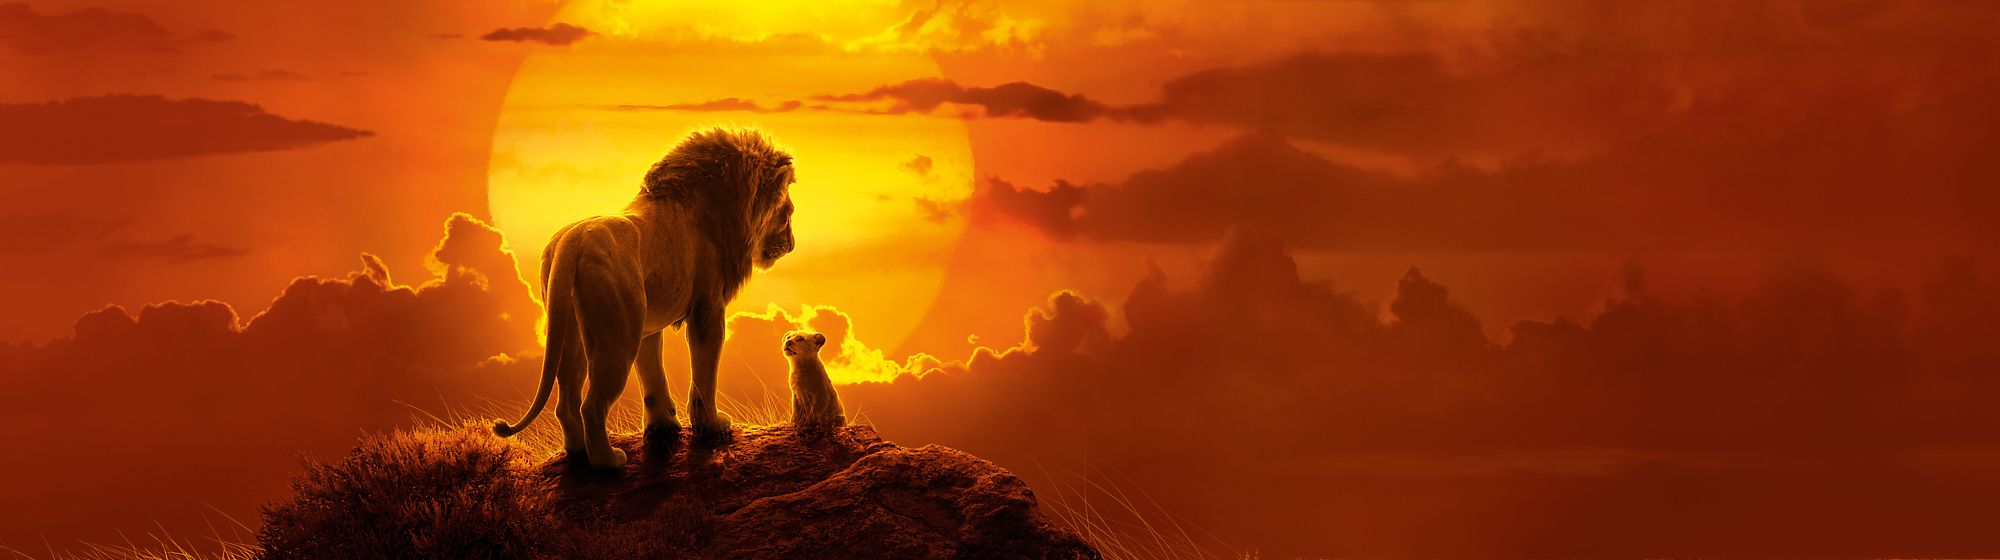 Explore our The Lion King range including soft toys, playsets, homeware, collectibles and more